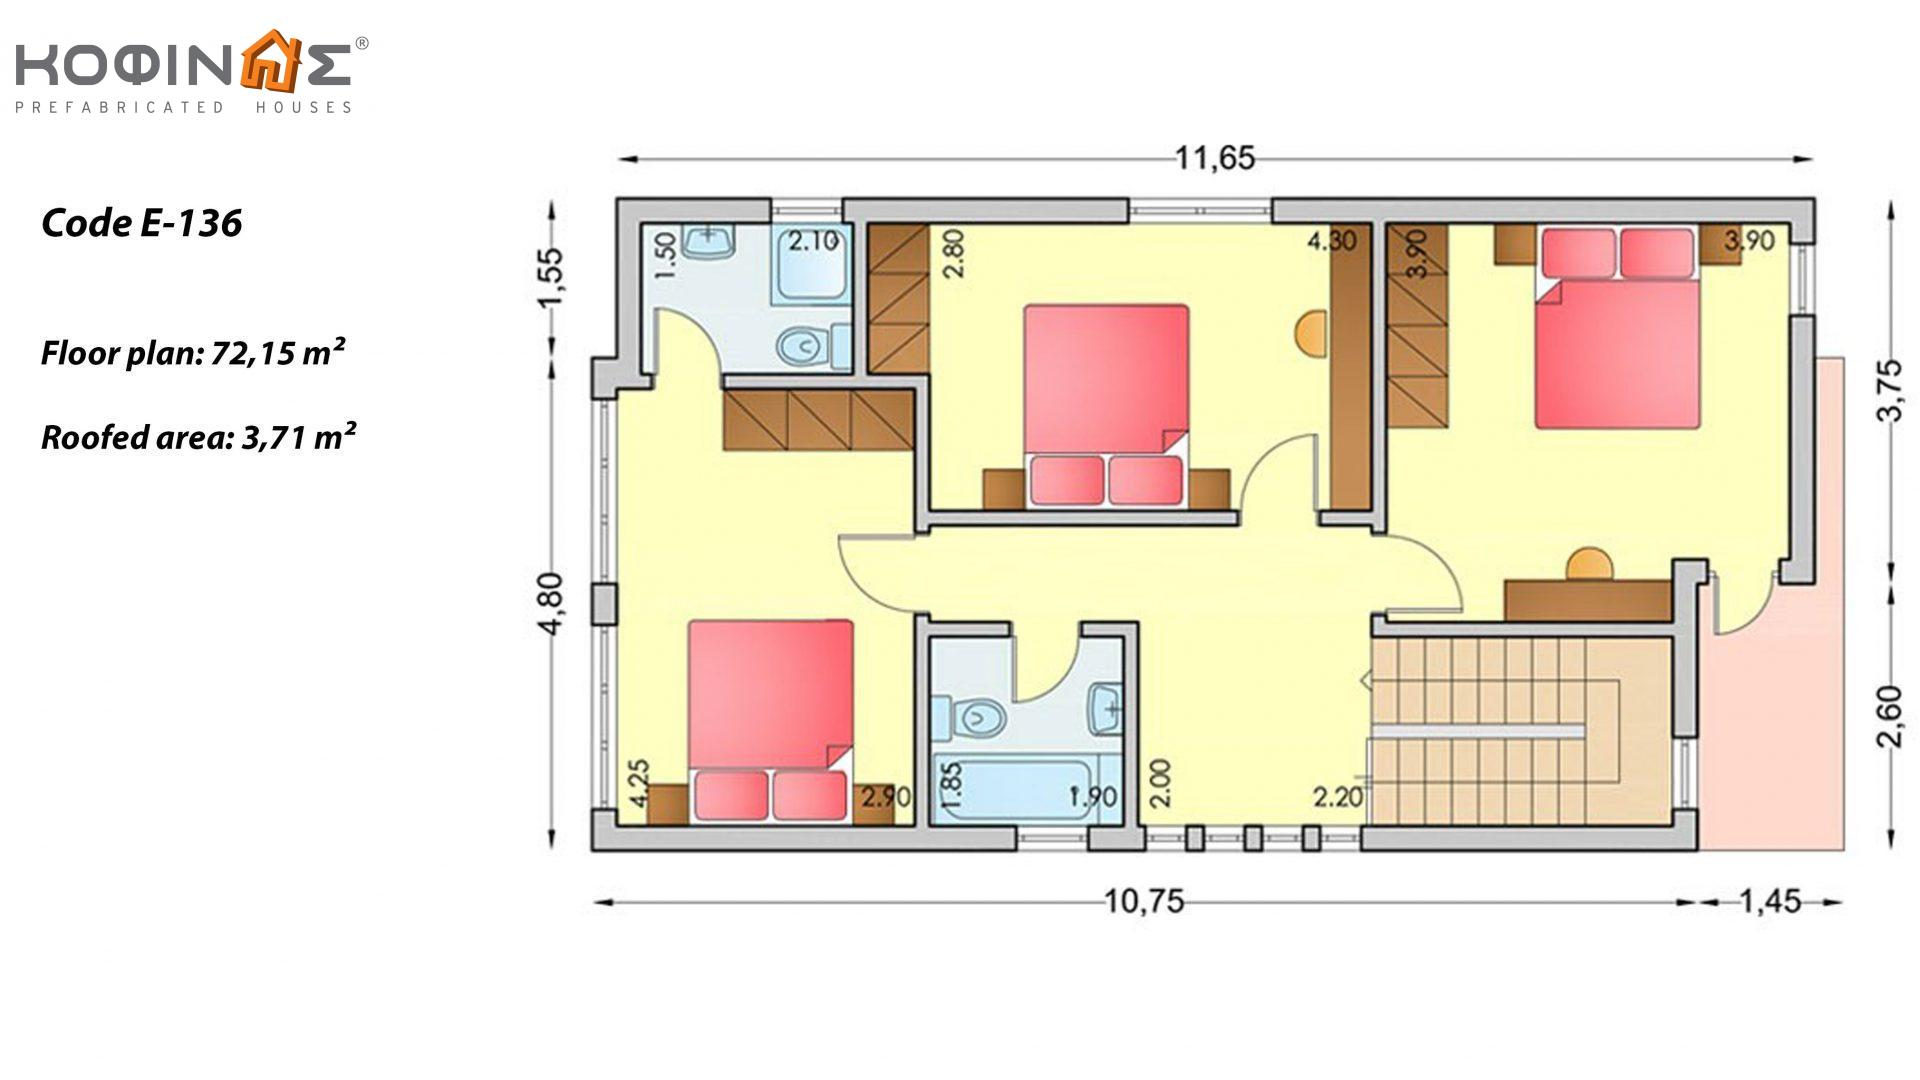 Complex of houses E-136, total surface of 3 x 136,39 = 409,17 m²,roofed areas 14,8 m²